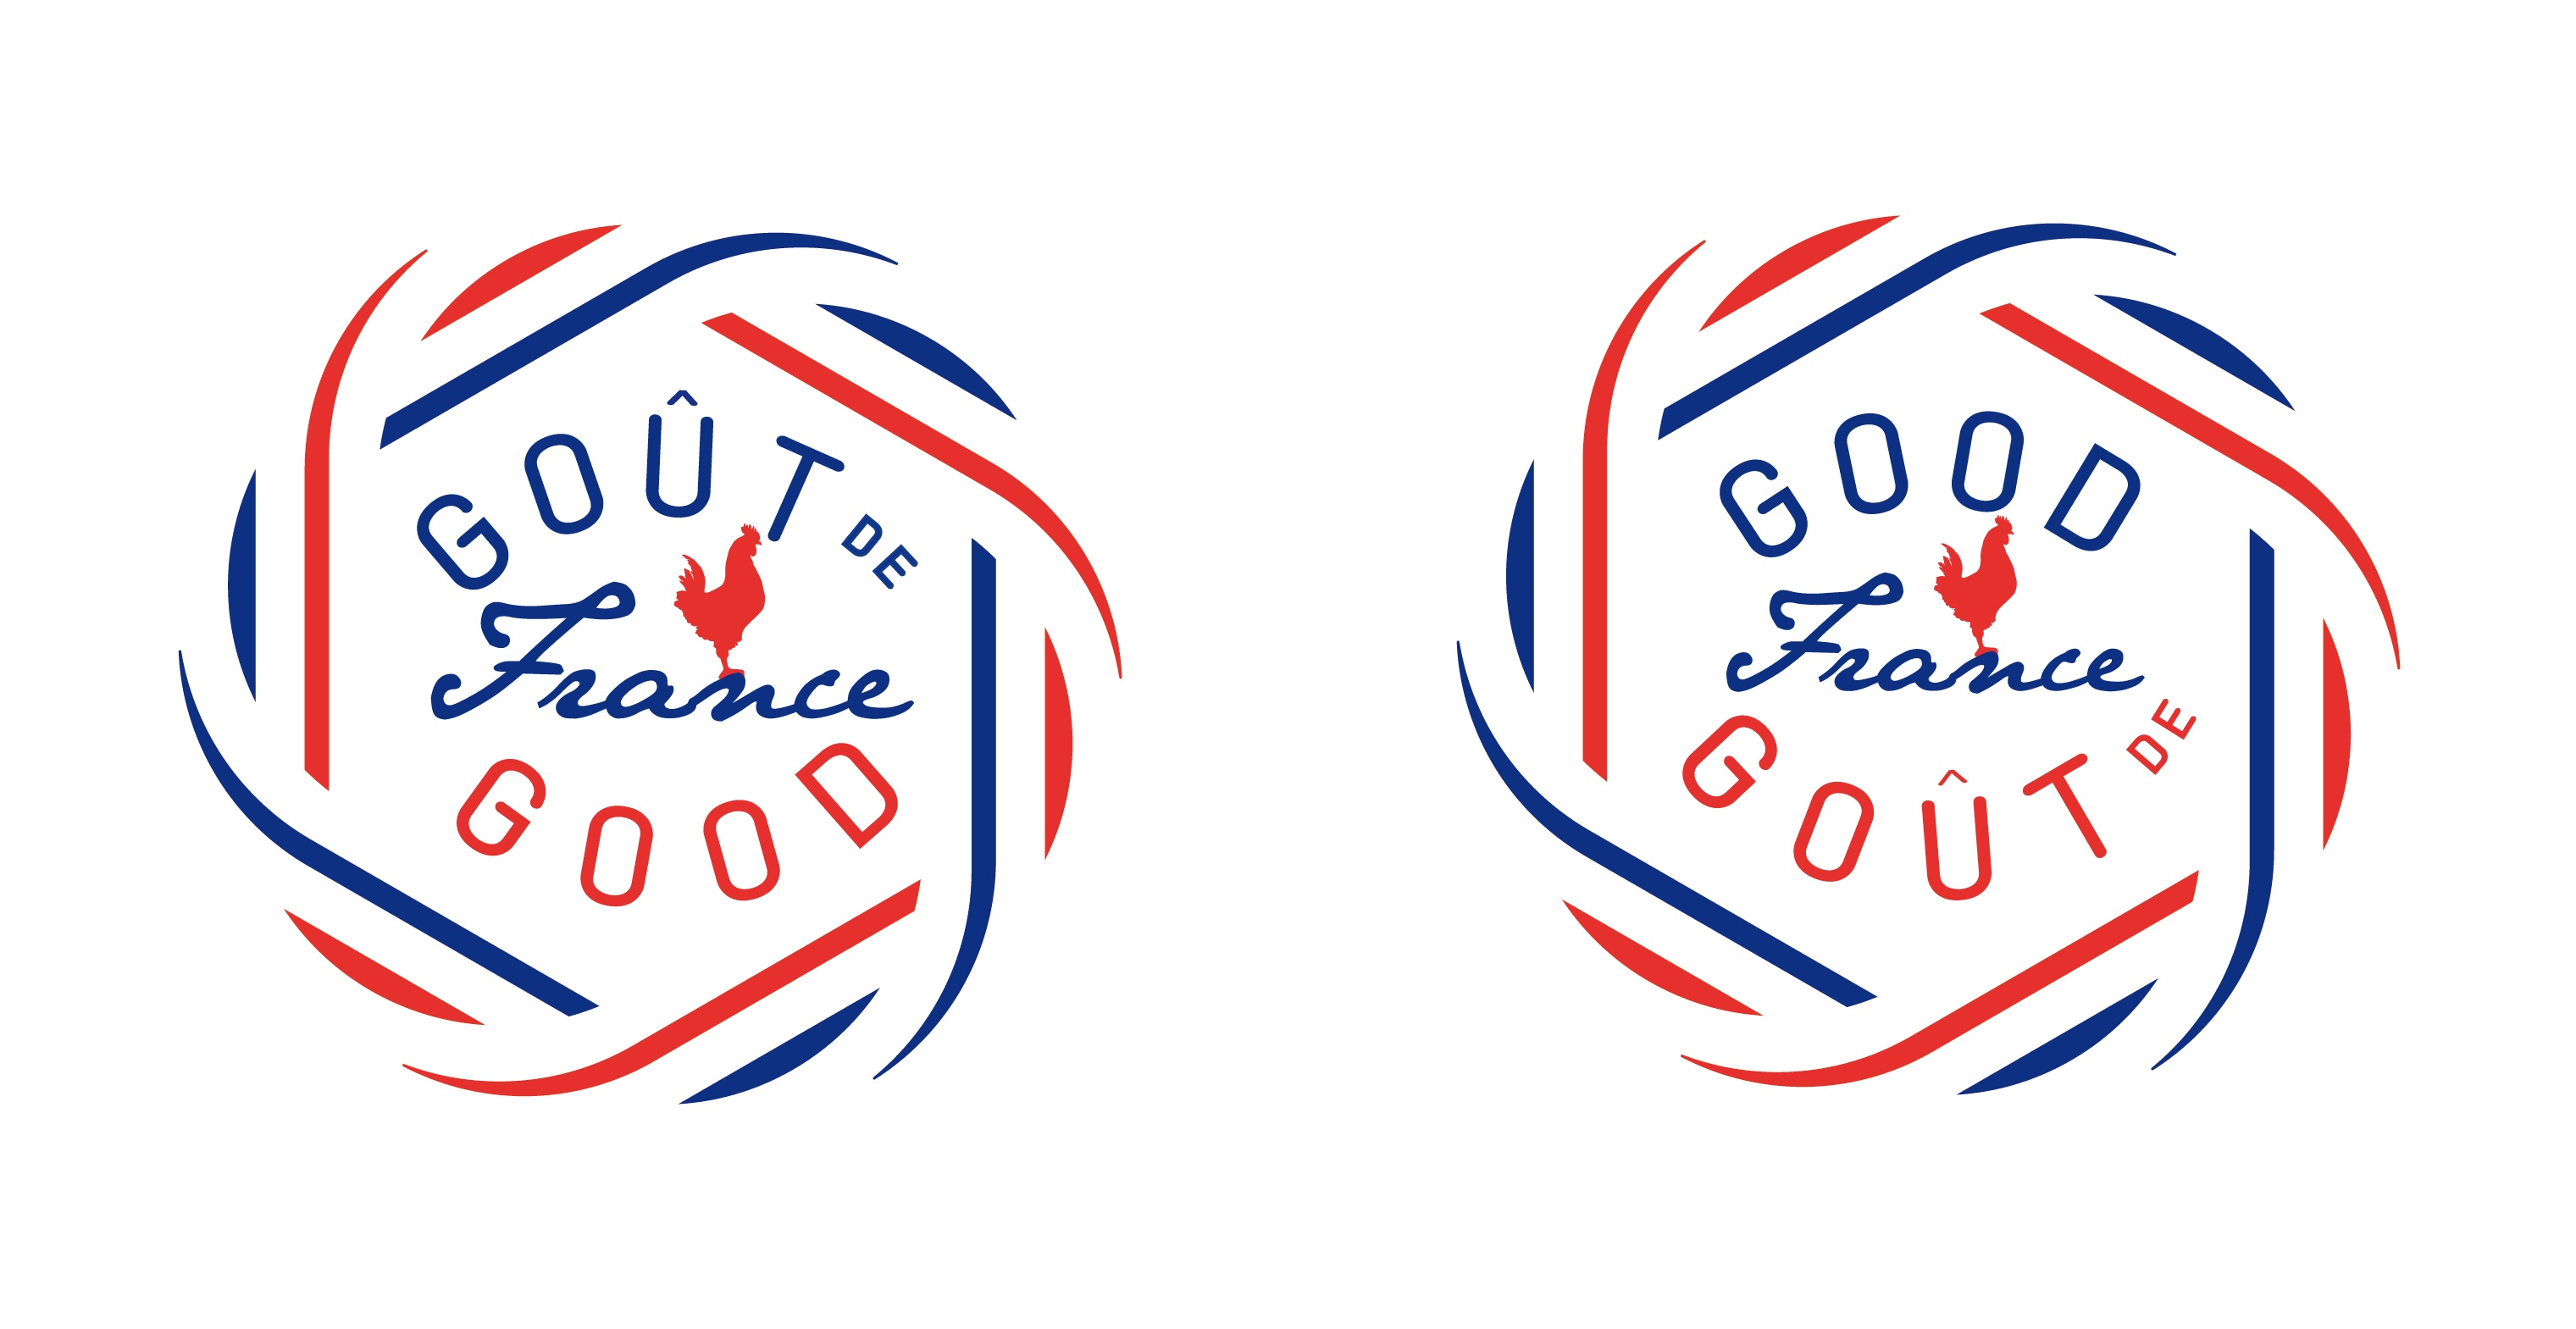 image__header__goutdefrance-goodfrance__good-france-logo-hd-3jpg